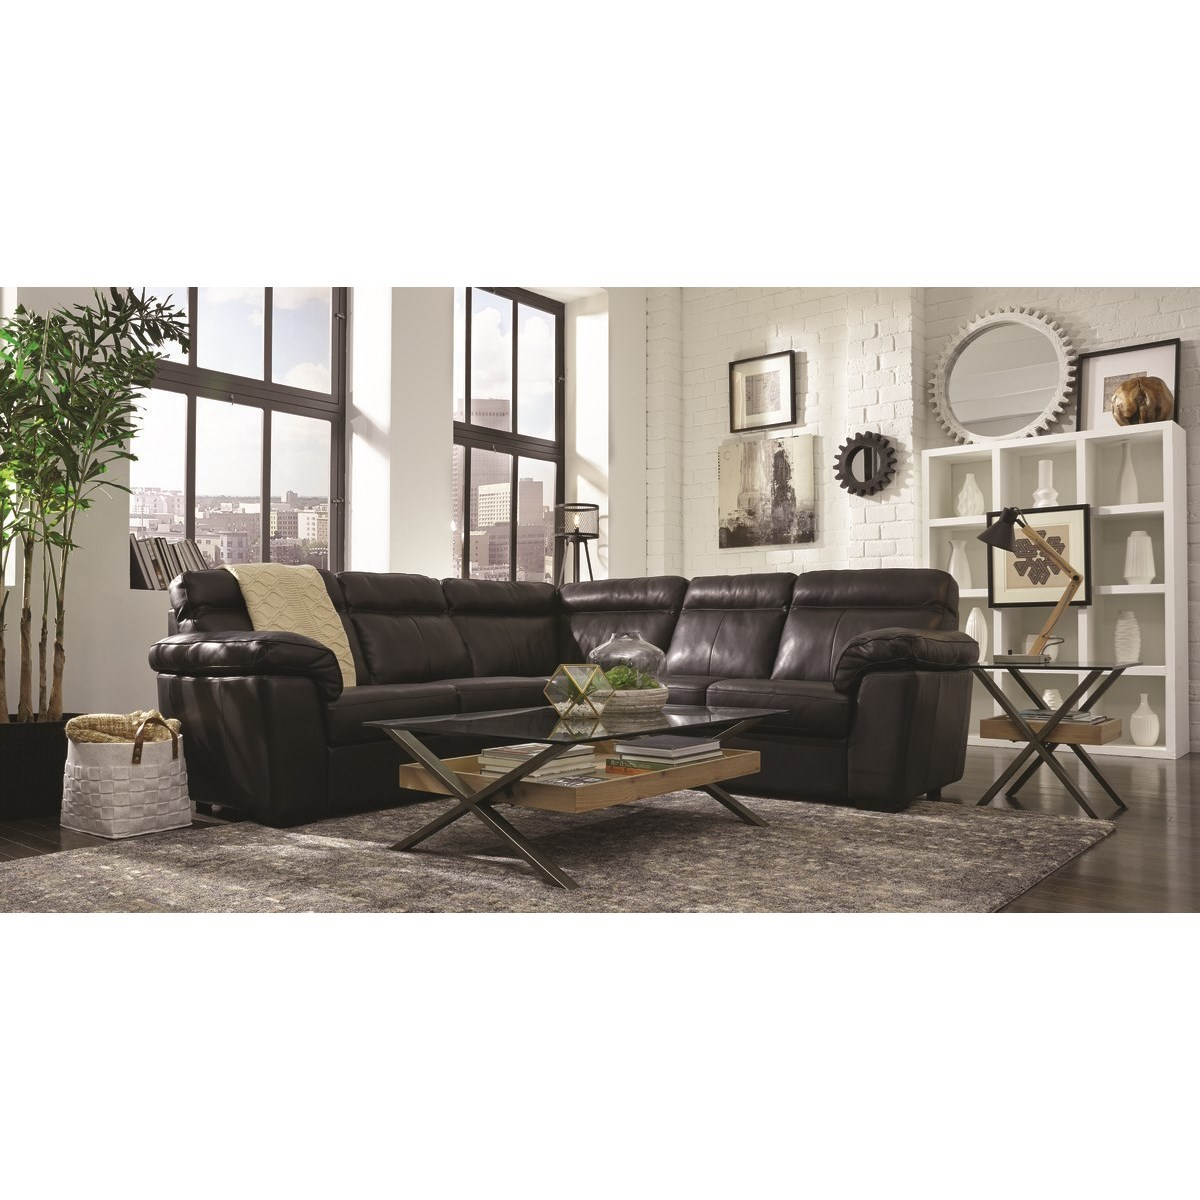 Palliser Kingston Casual 3 Piece Sectional With Pillow